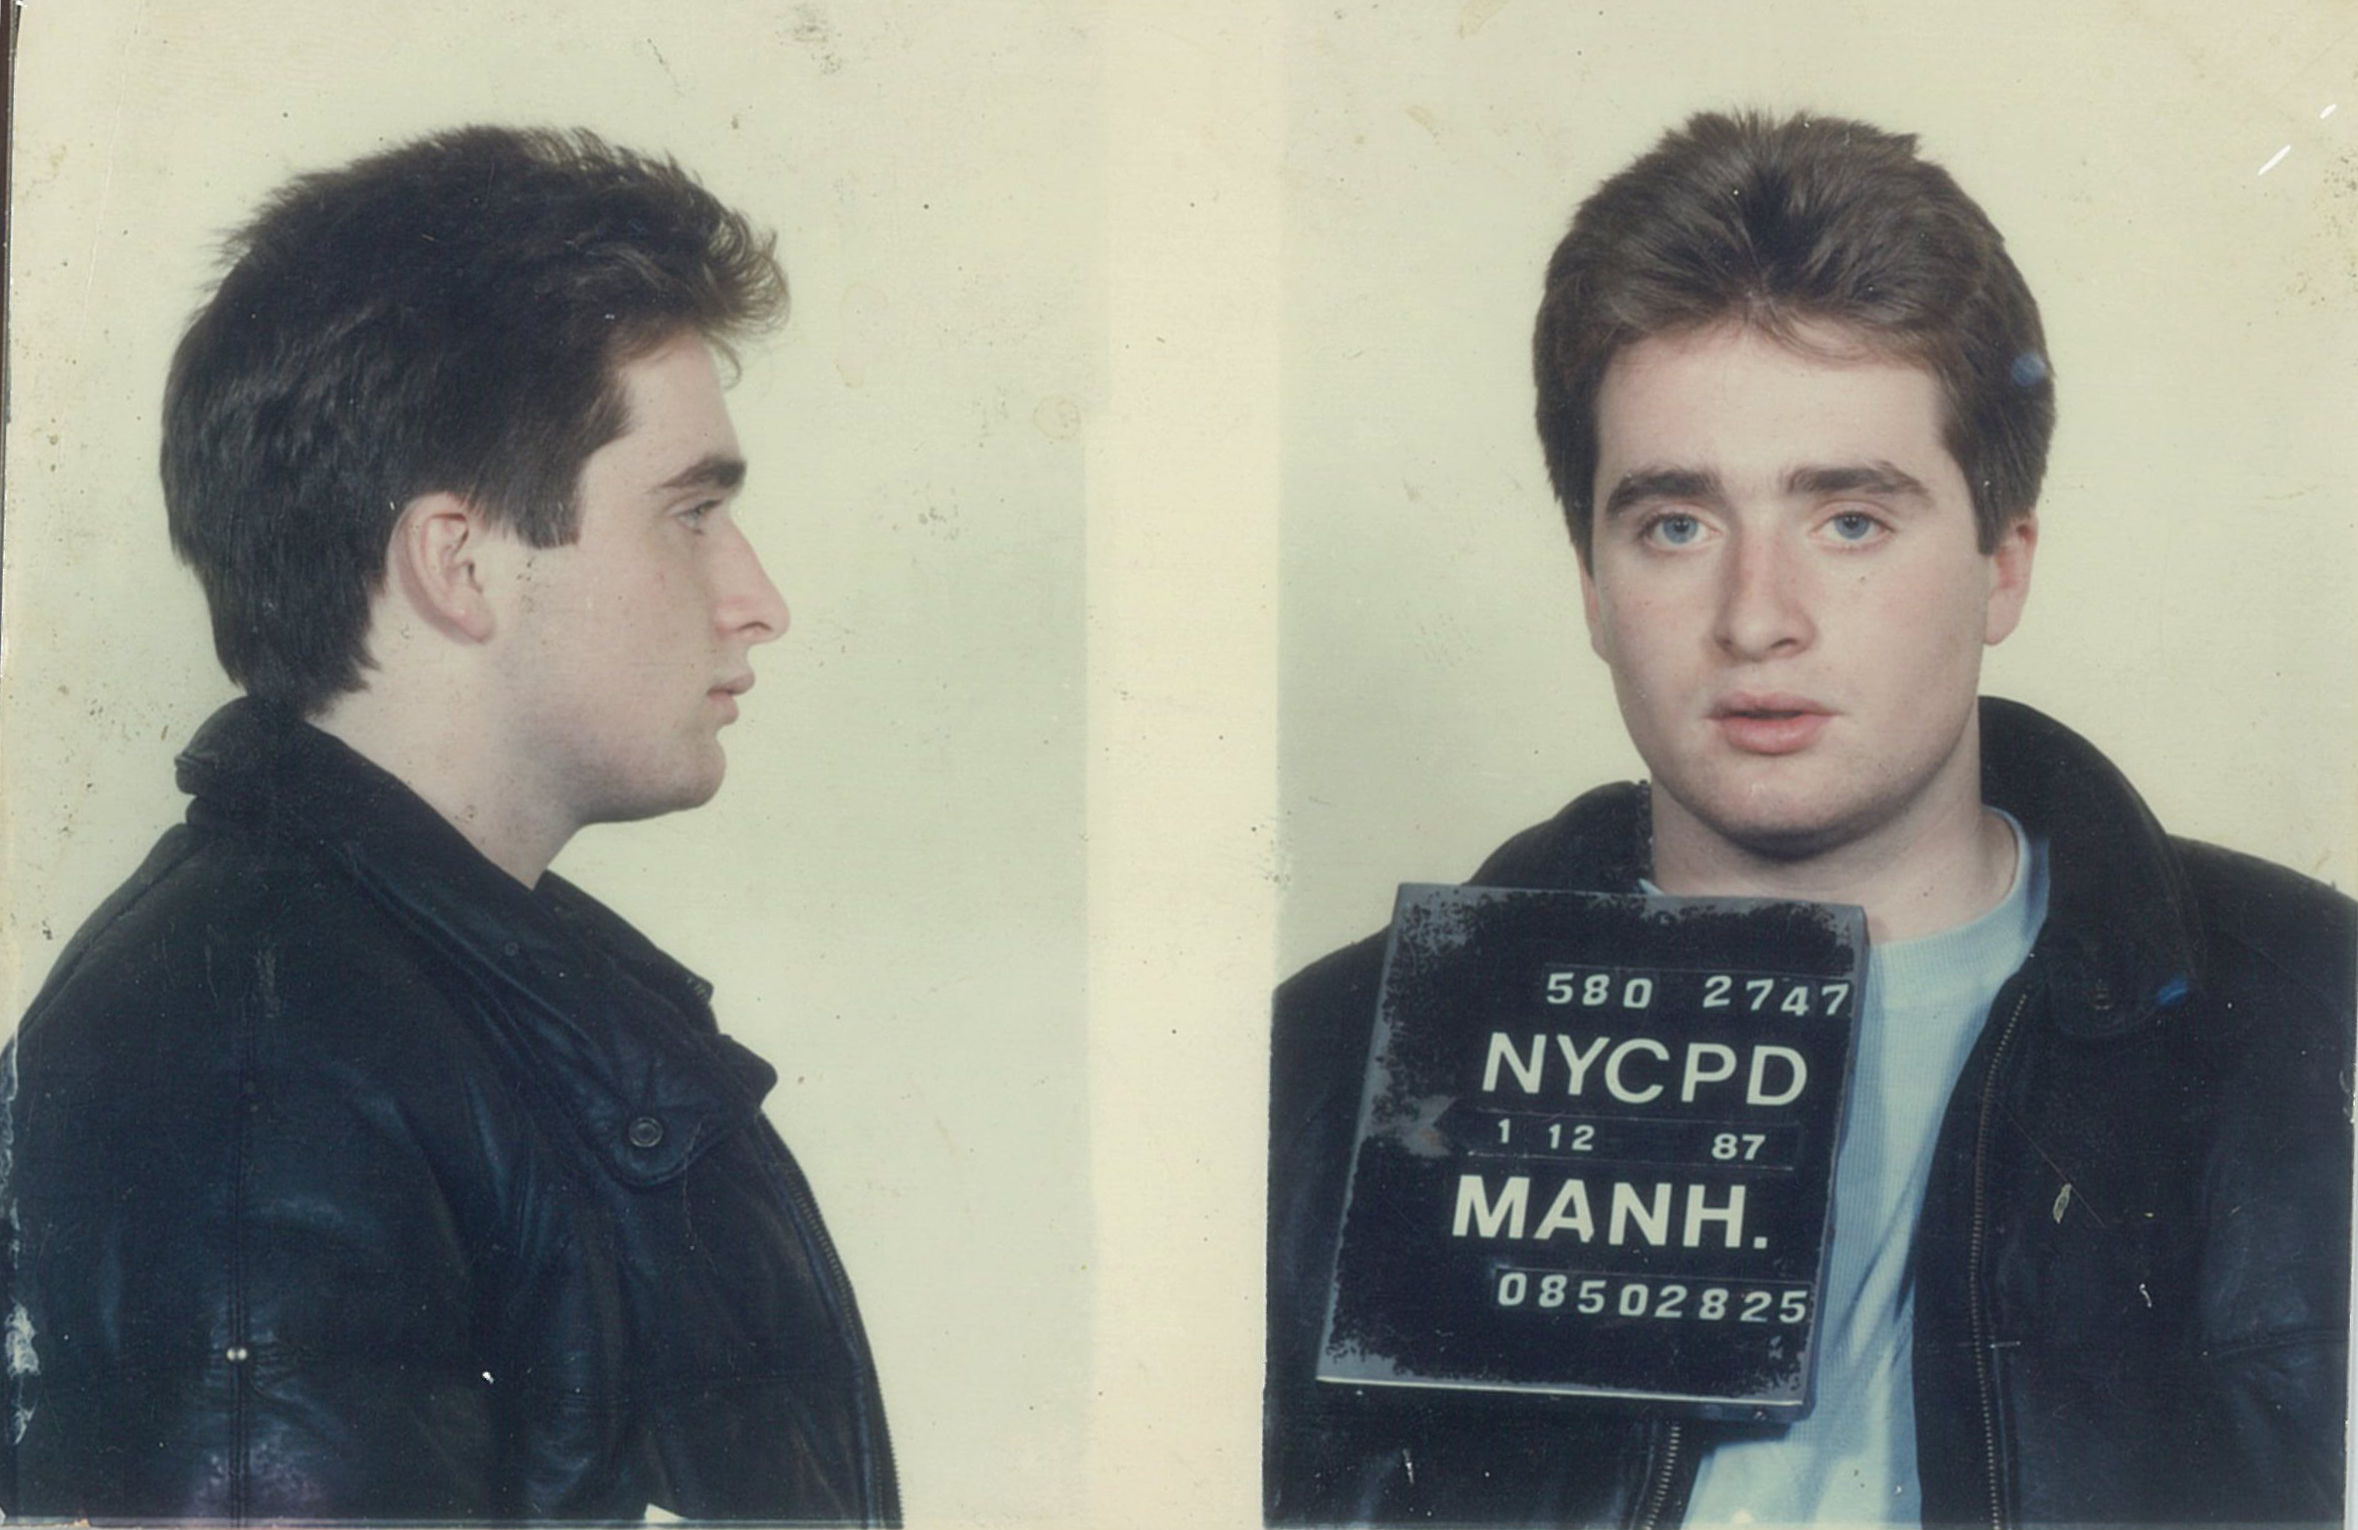 21 Jerry as NYCPD.jpg